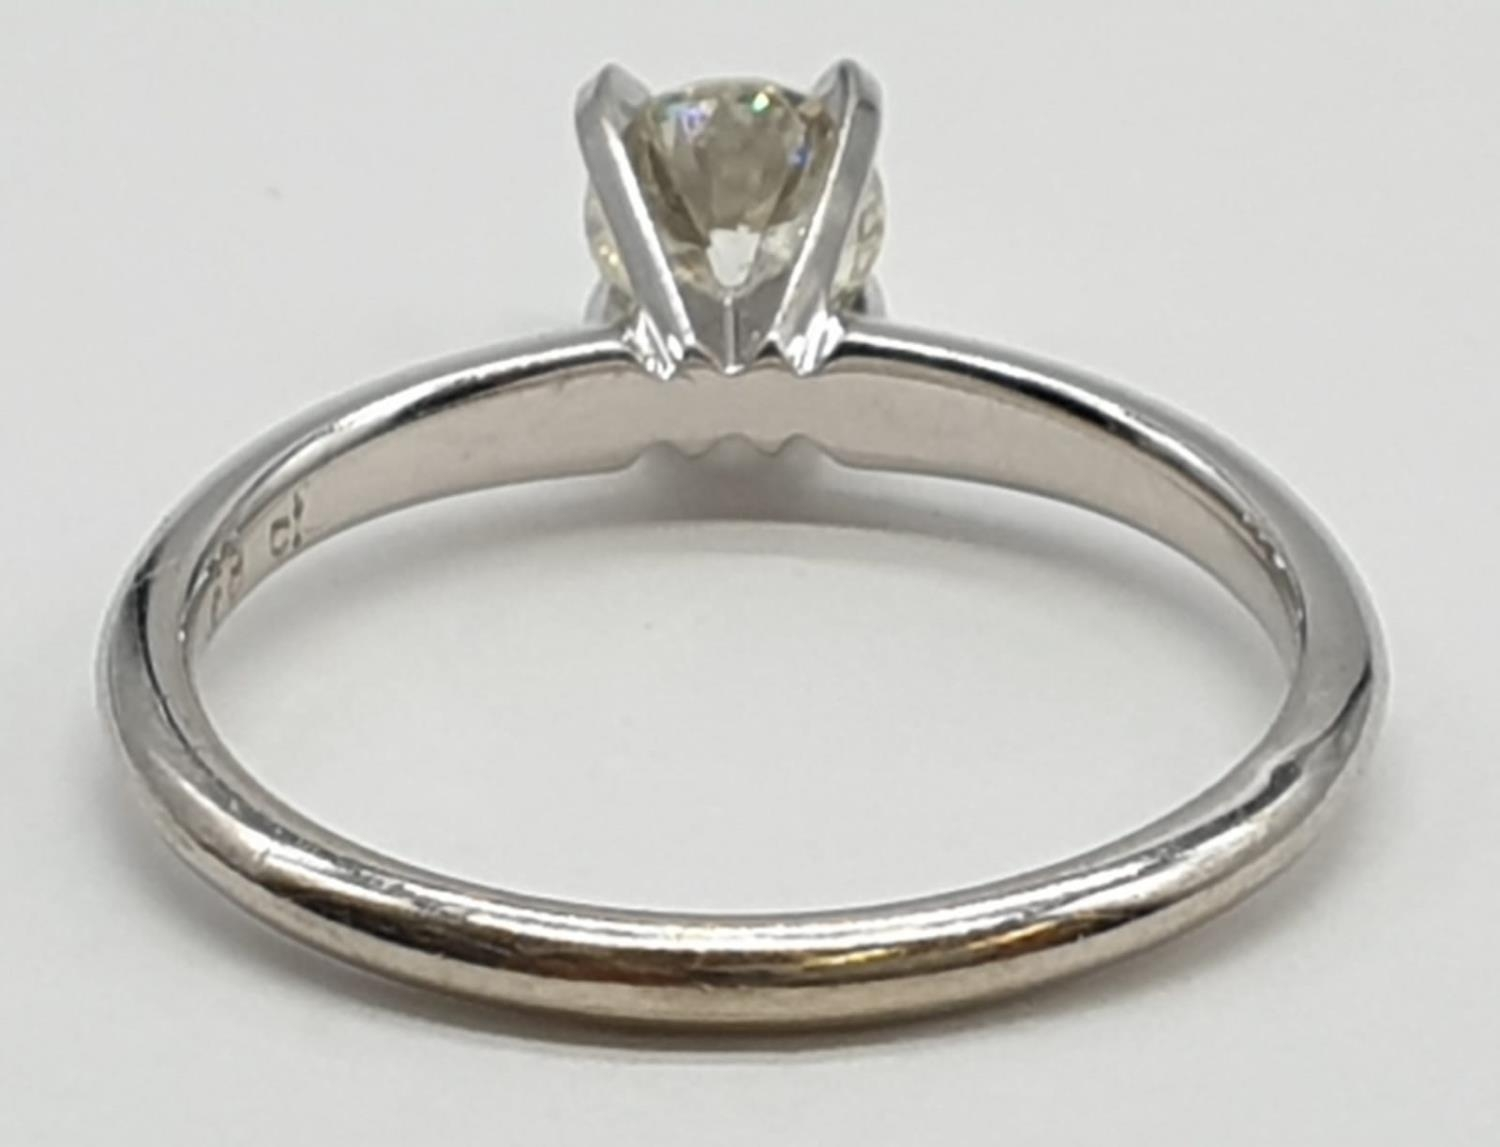 14ct white gold with 0.56ct diamond solitaire ring (round brilliant cut, colour H, clarity SI1 - Image 11 of 18